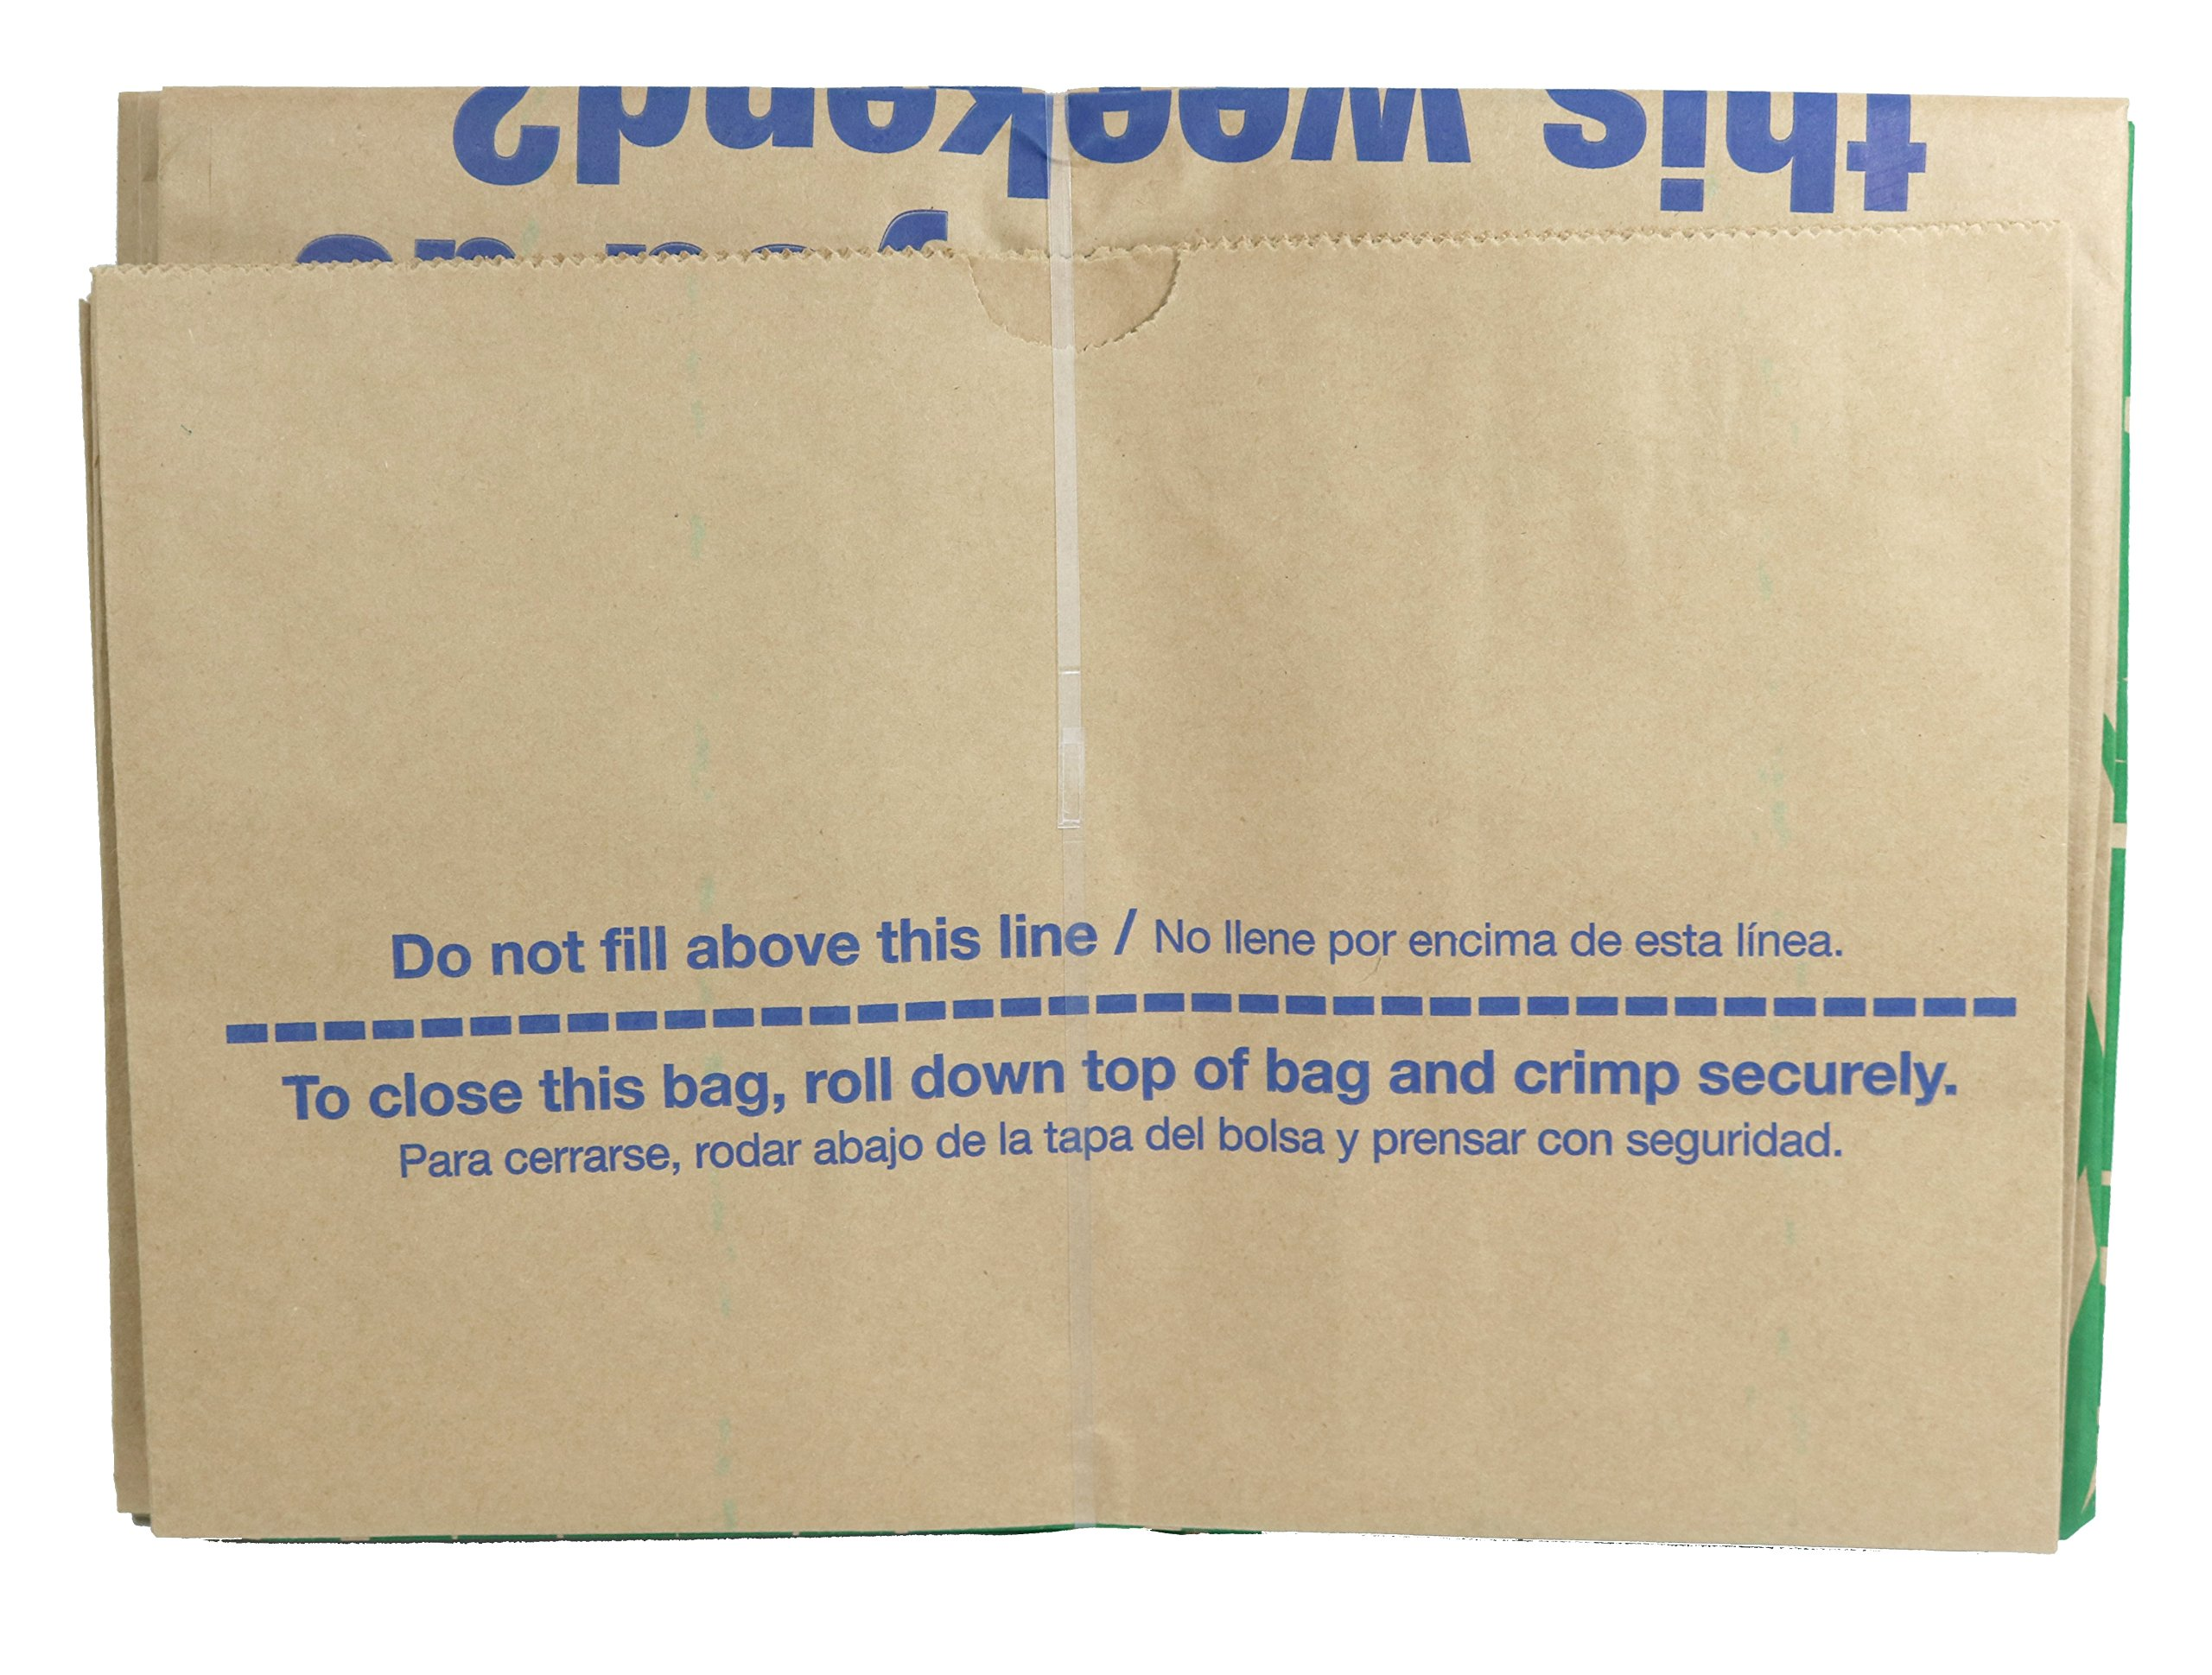 Lowe's H&PC-75419 (25 Count) 30 Gallon Heavy Duty Brown Paper Lawn and Refuse Bags for Home, Original Version by Lowe's (Image #5)